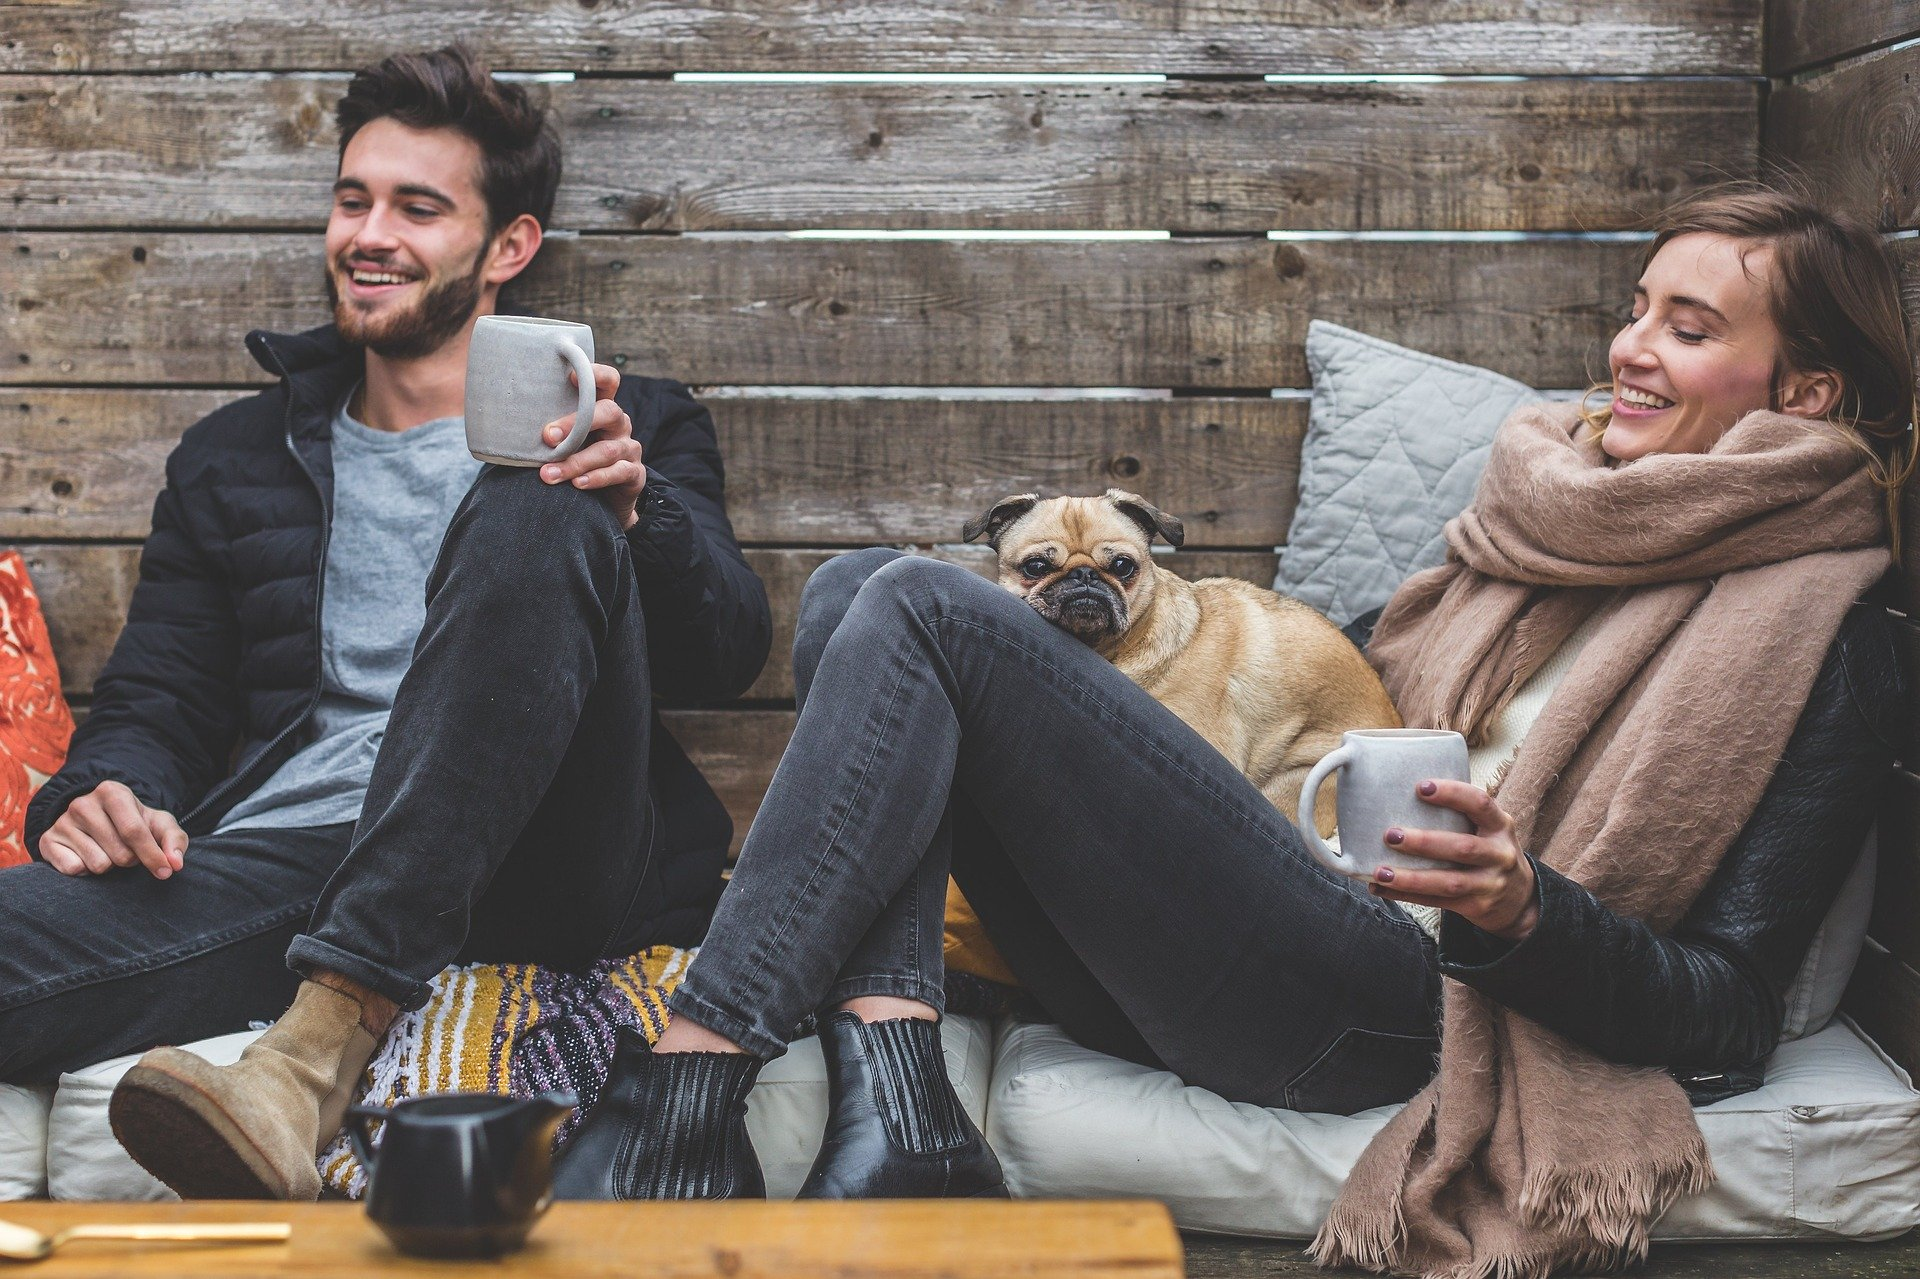 A couple smiling as you will be doing after moving in with your partner.